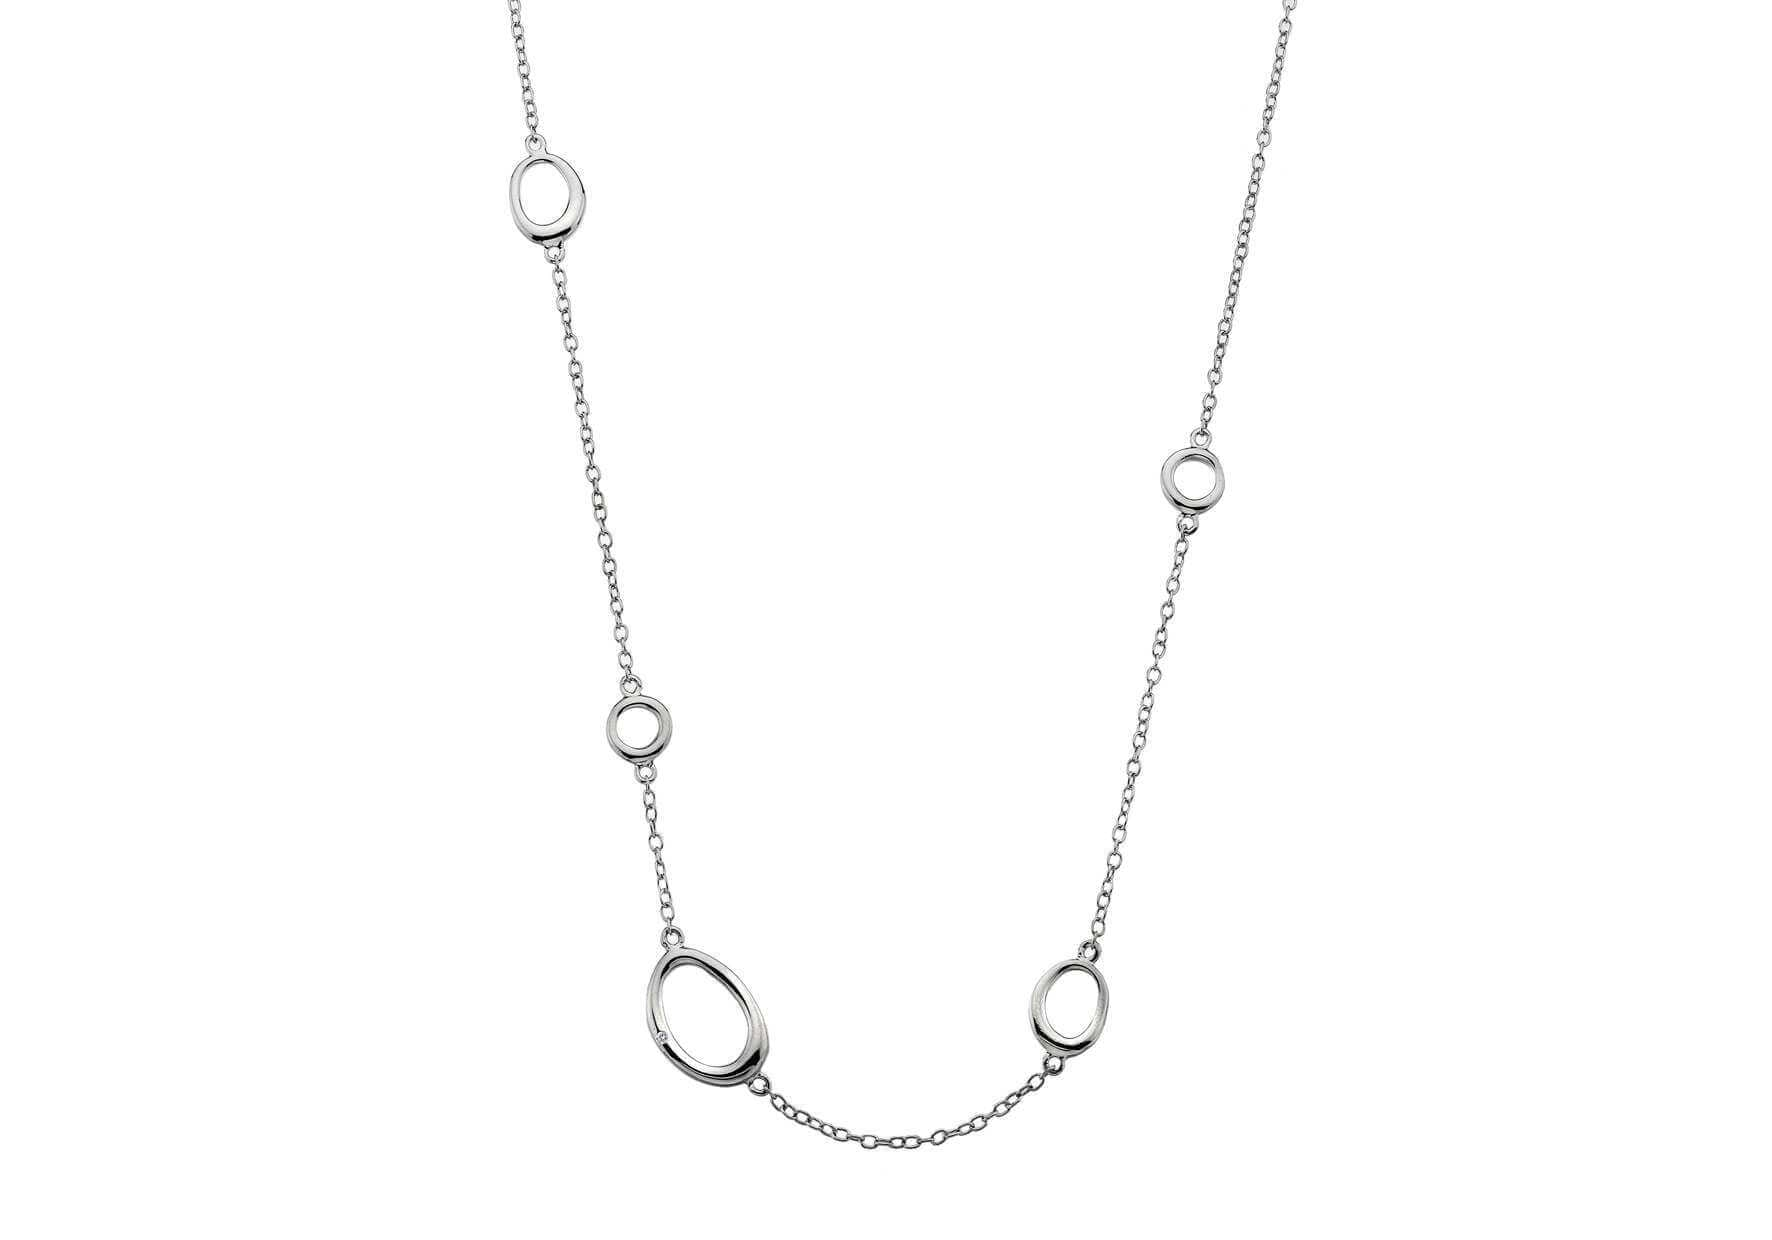 Rhodium Plated Silver & Diamond Necklace